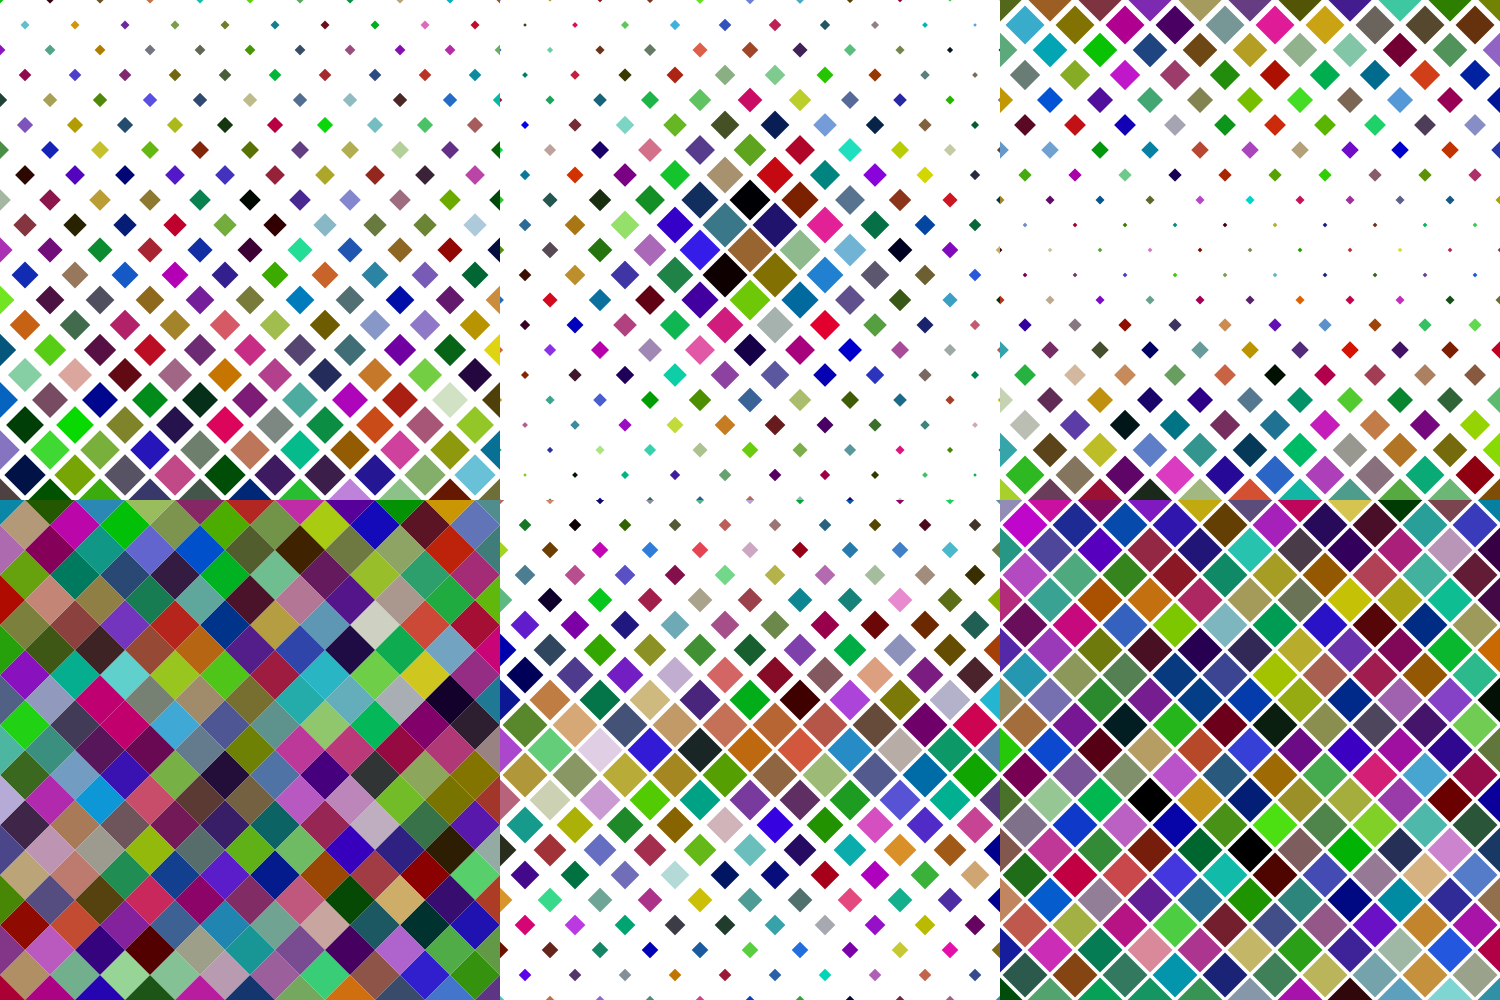 24 Multicolored Square Patterns (AI, EPS, JPG 5000x5000) example image 4